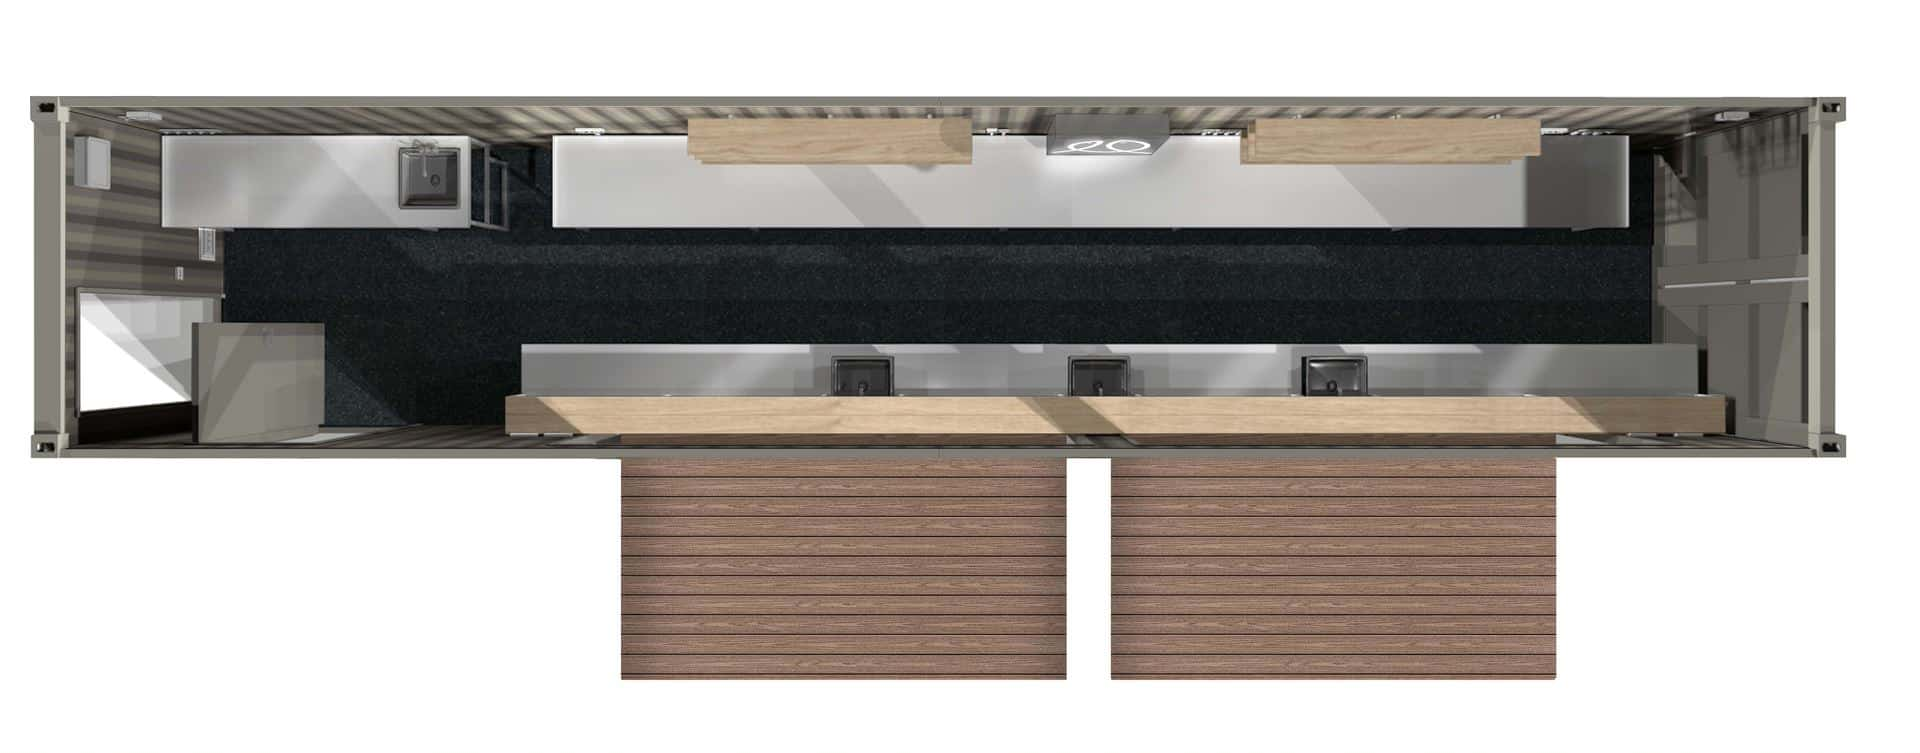 Plan view of a concept design of a shipping container bar conversion